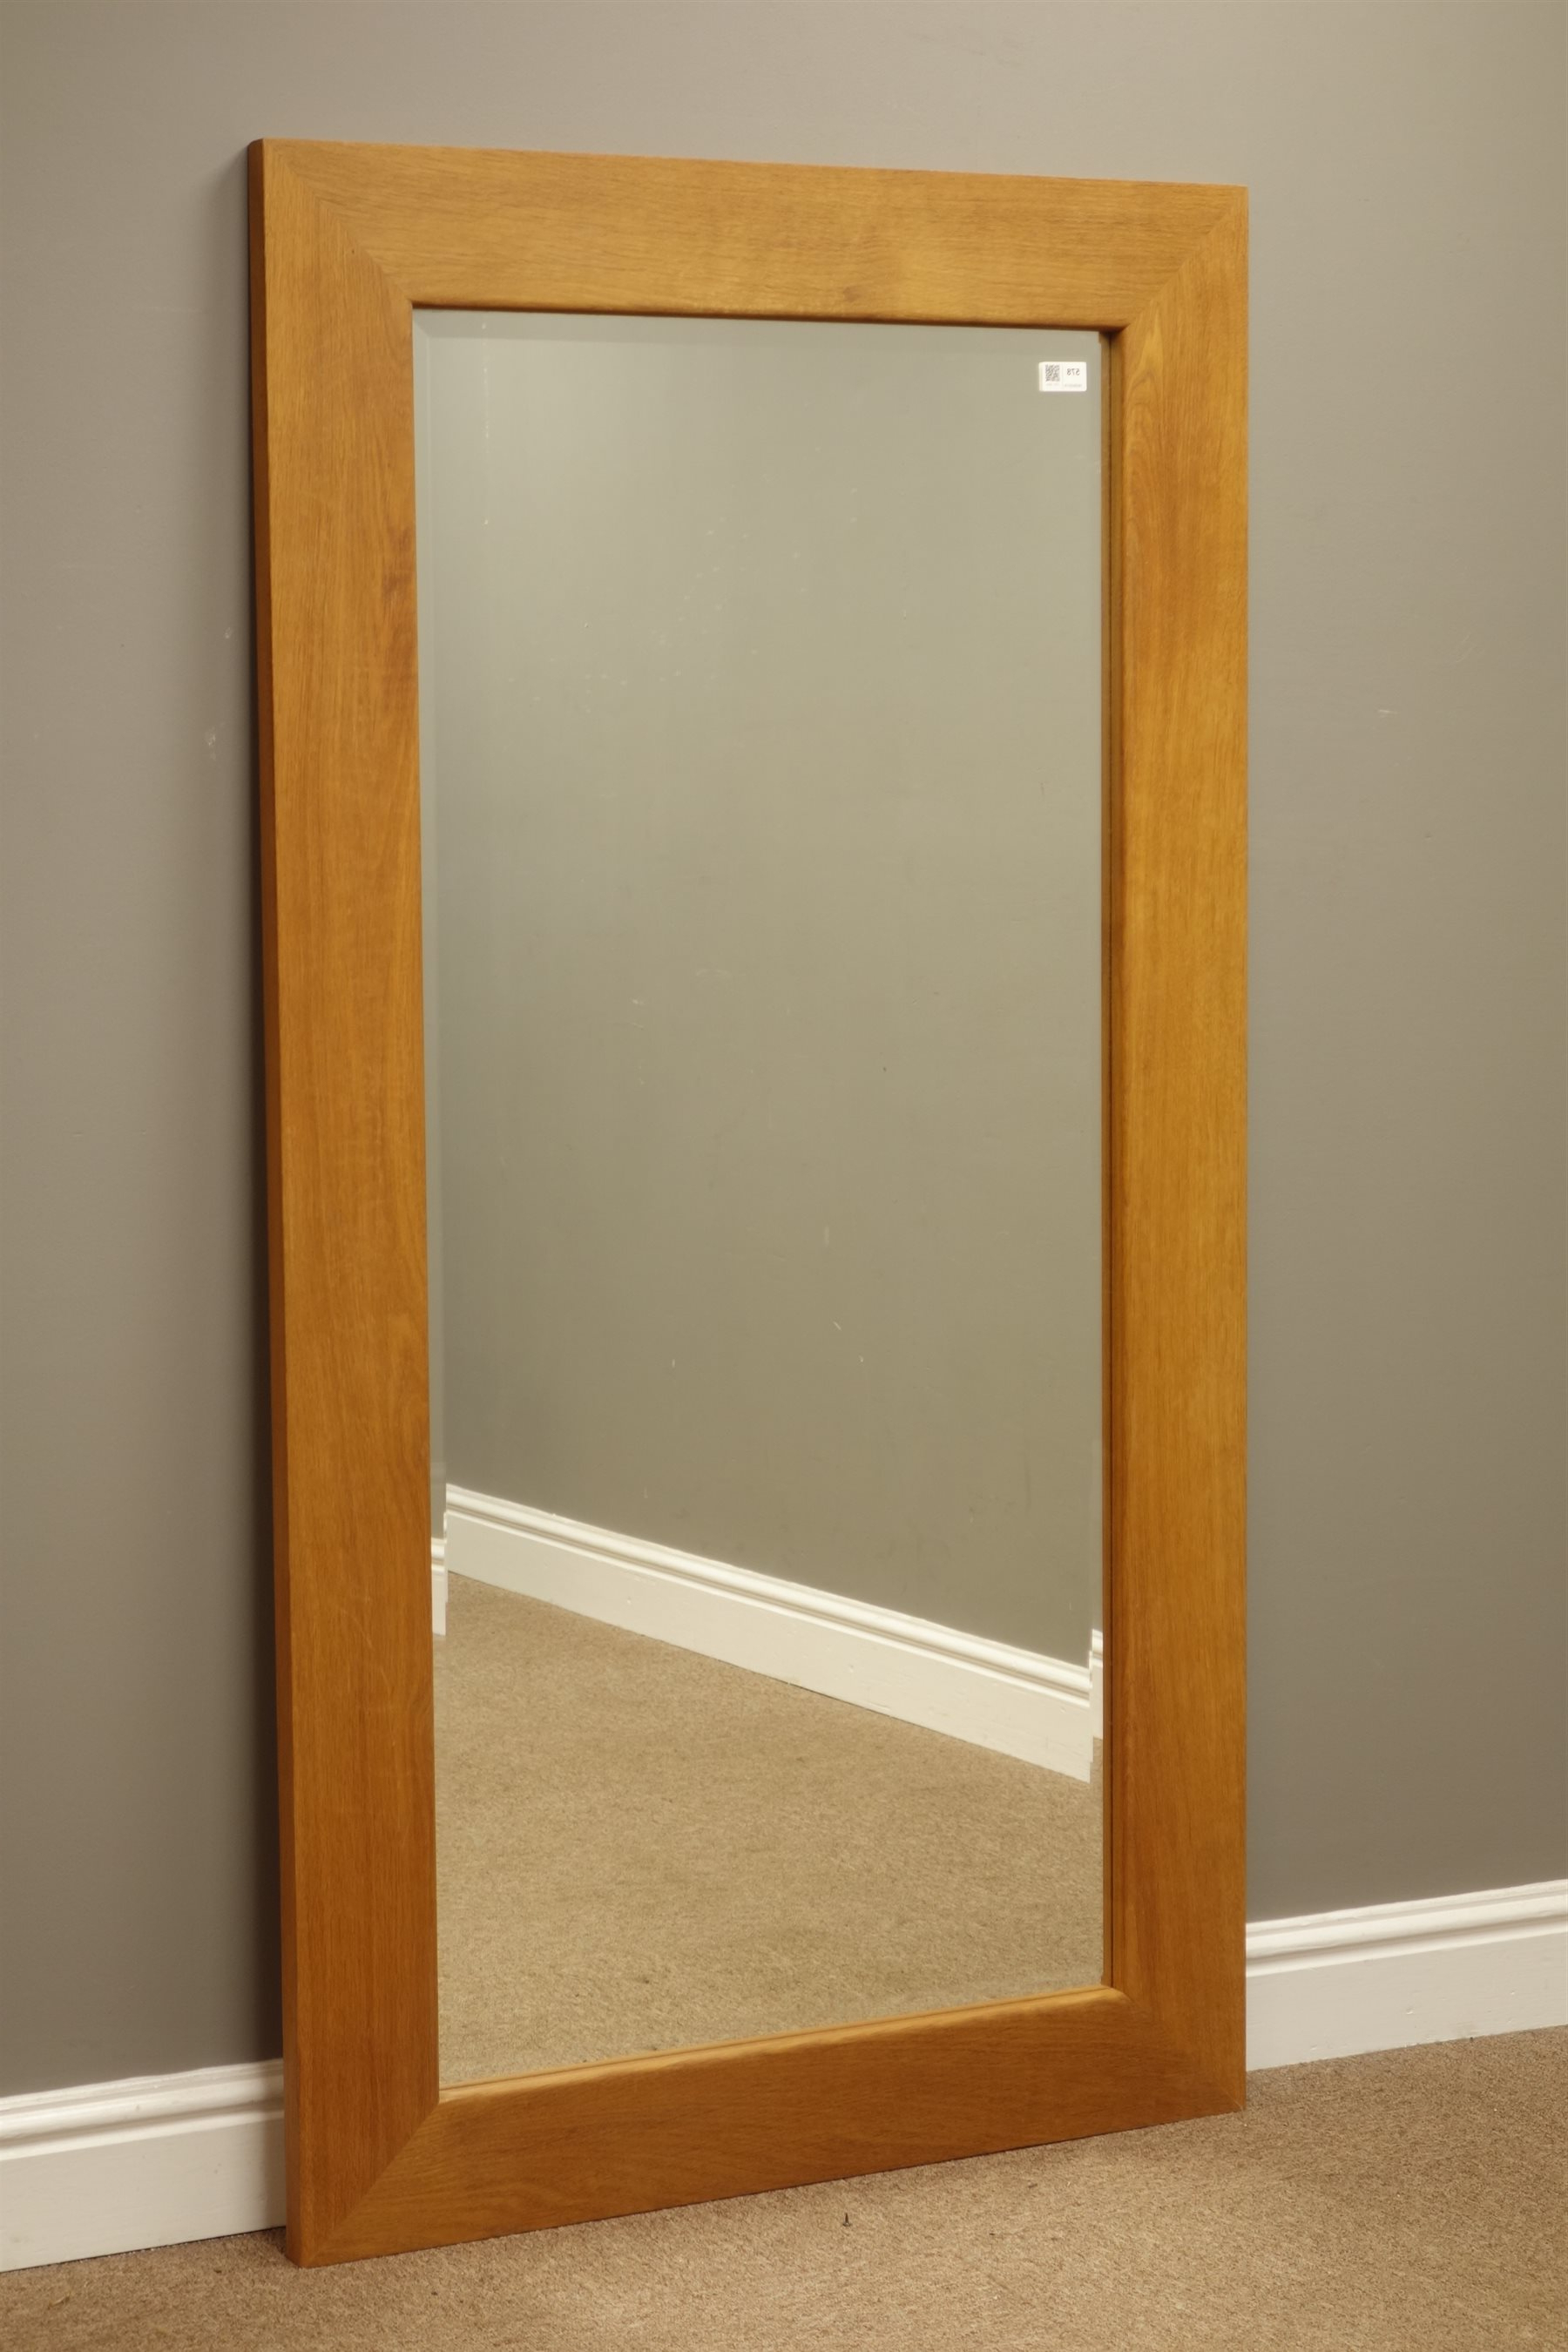 Oak Framed Wall Mirrors Throughout Trendy Solid Oak Framed Rectangular Wall Mirror With Bevelled Glass (View 4 of 20)